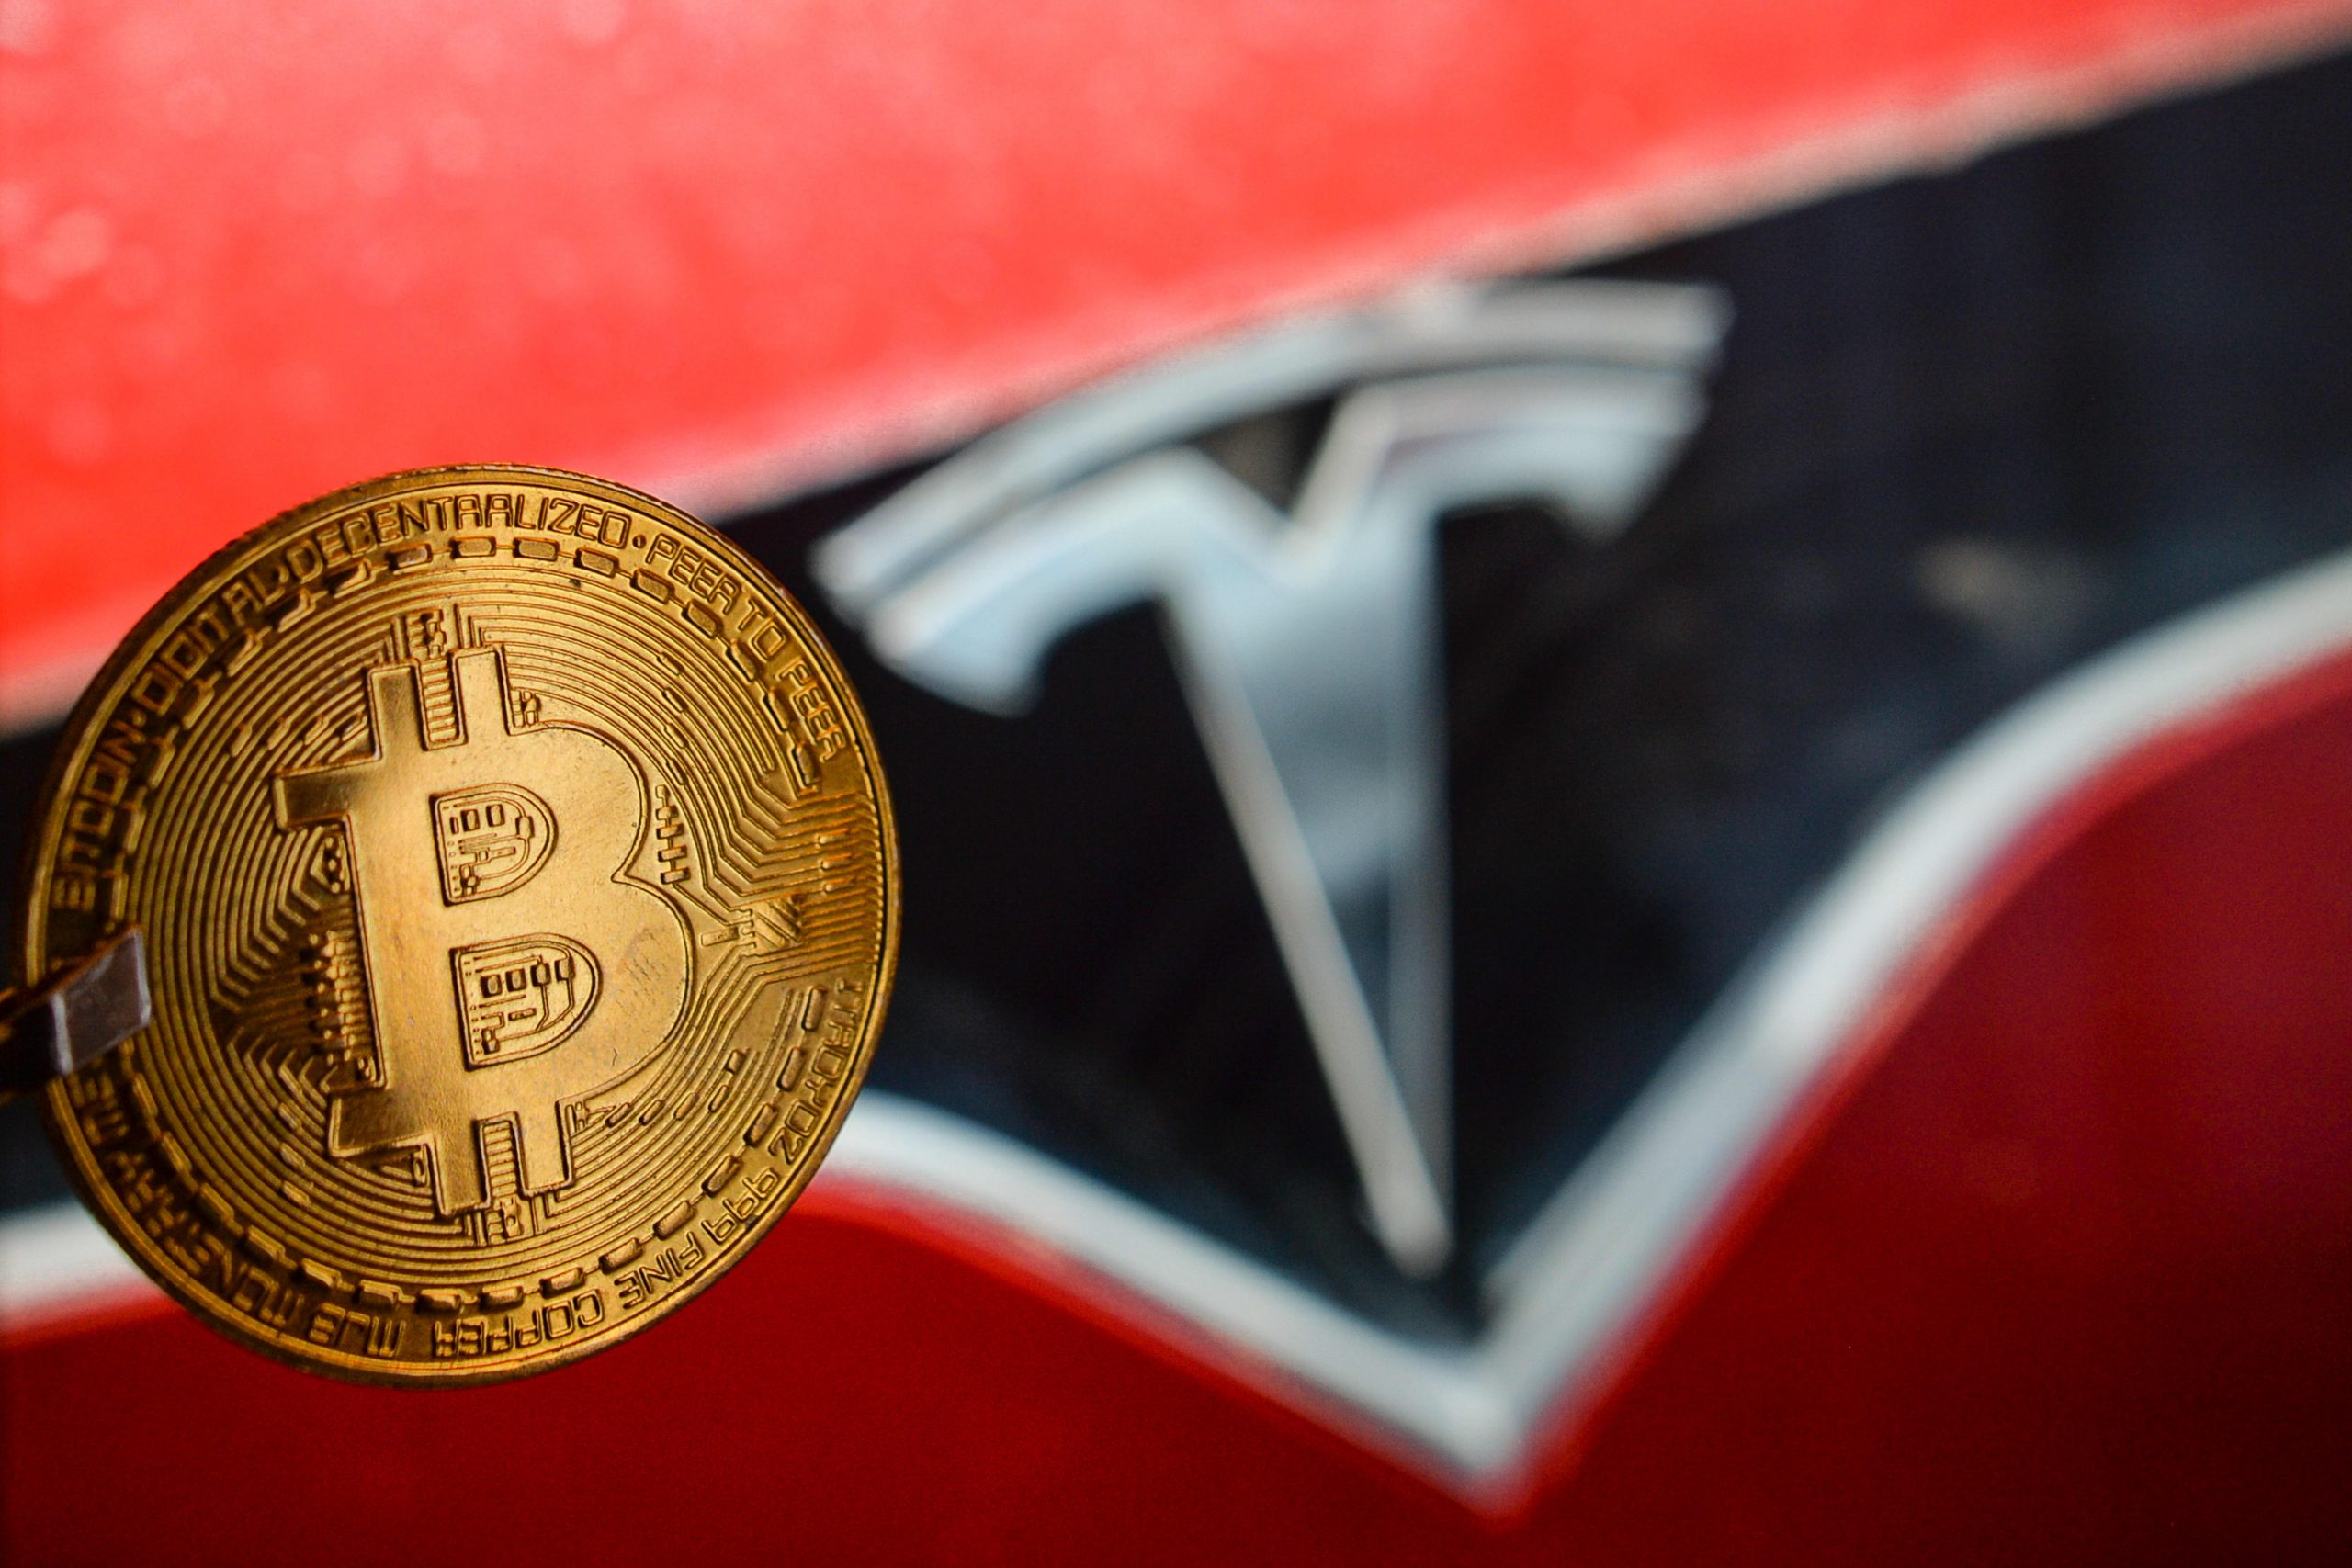 Tesla made $ 1 billion in profit from its bitcoin investment: Analyst